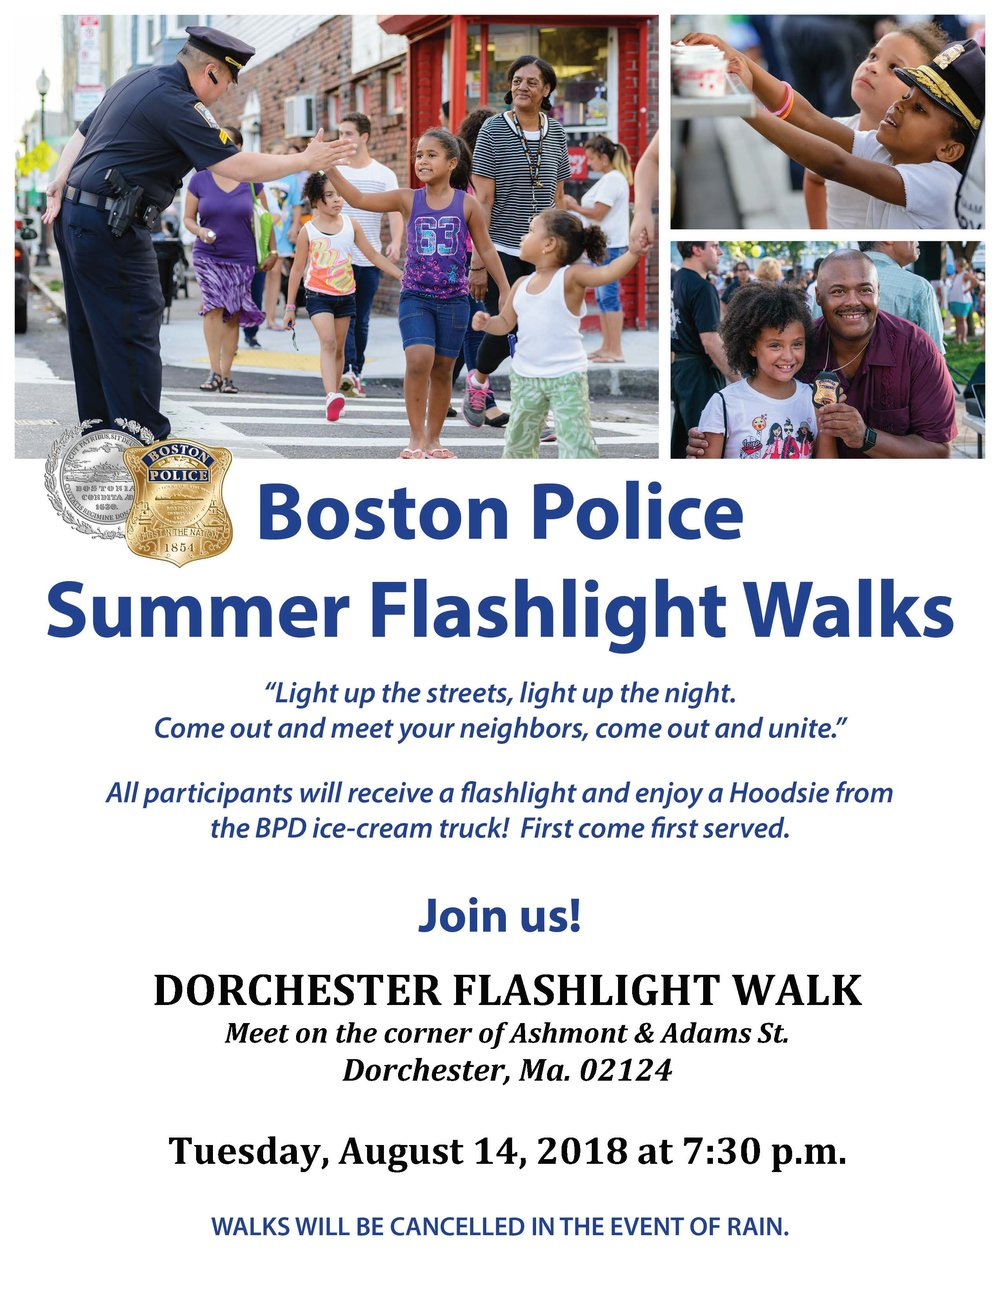 BPD in the Community: We Hope to See You Tonight at the Boston Police Summer Flashlight Walk in Dorchester